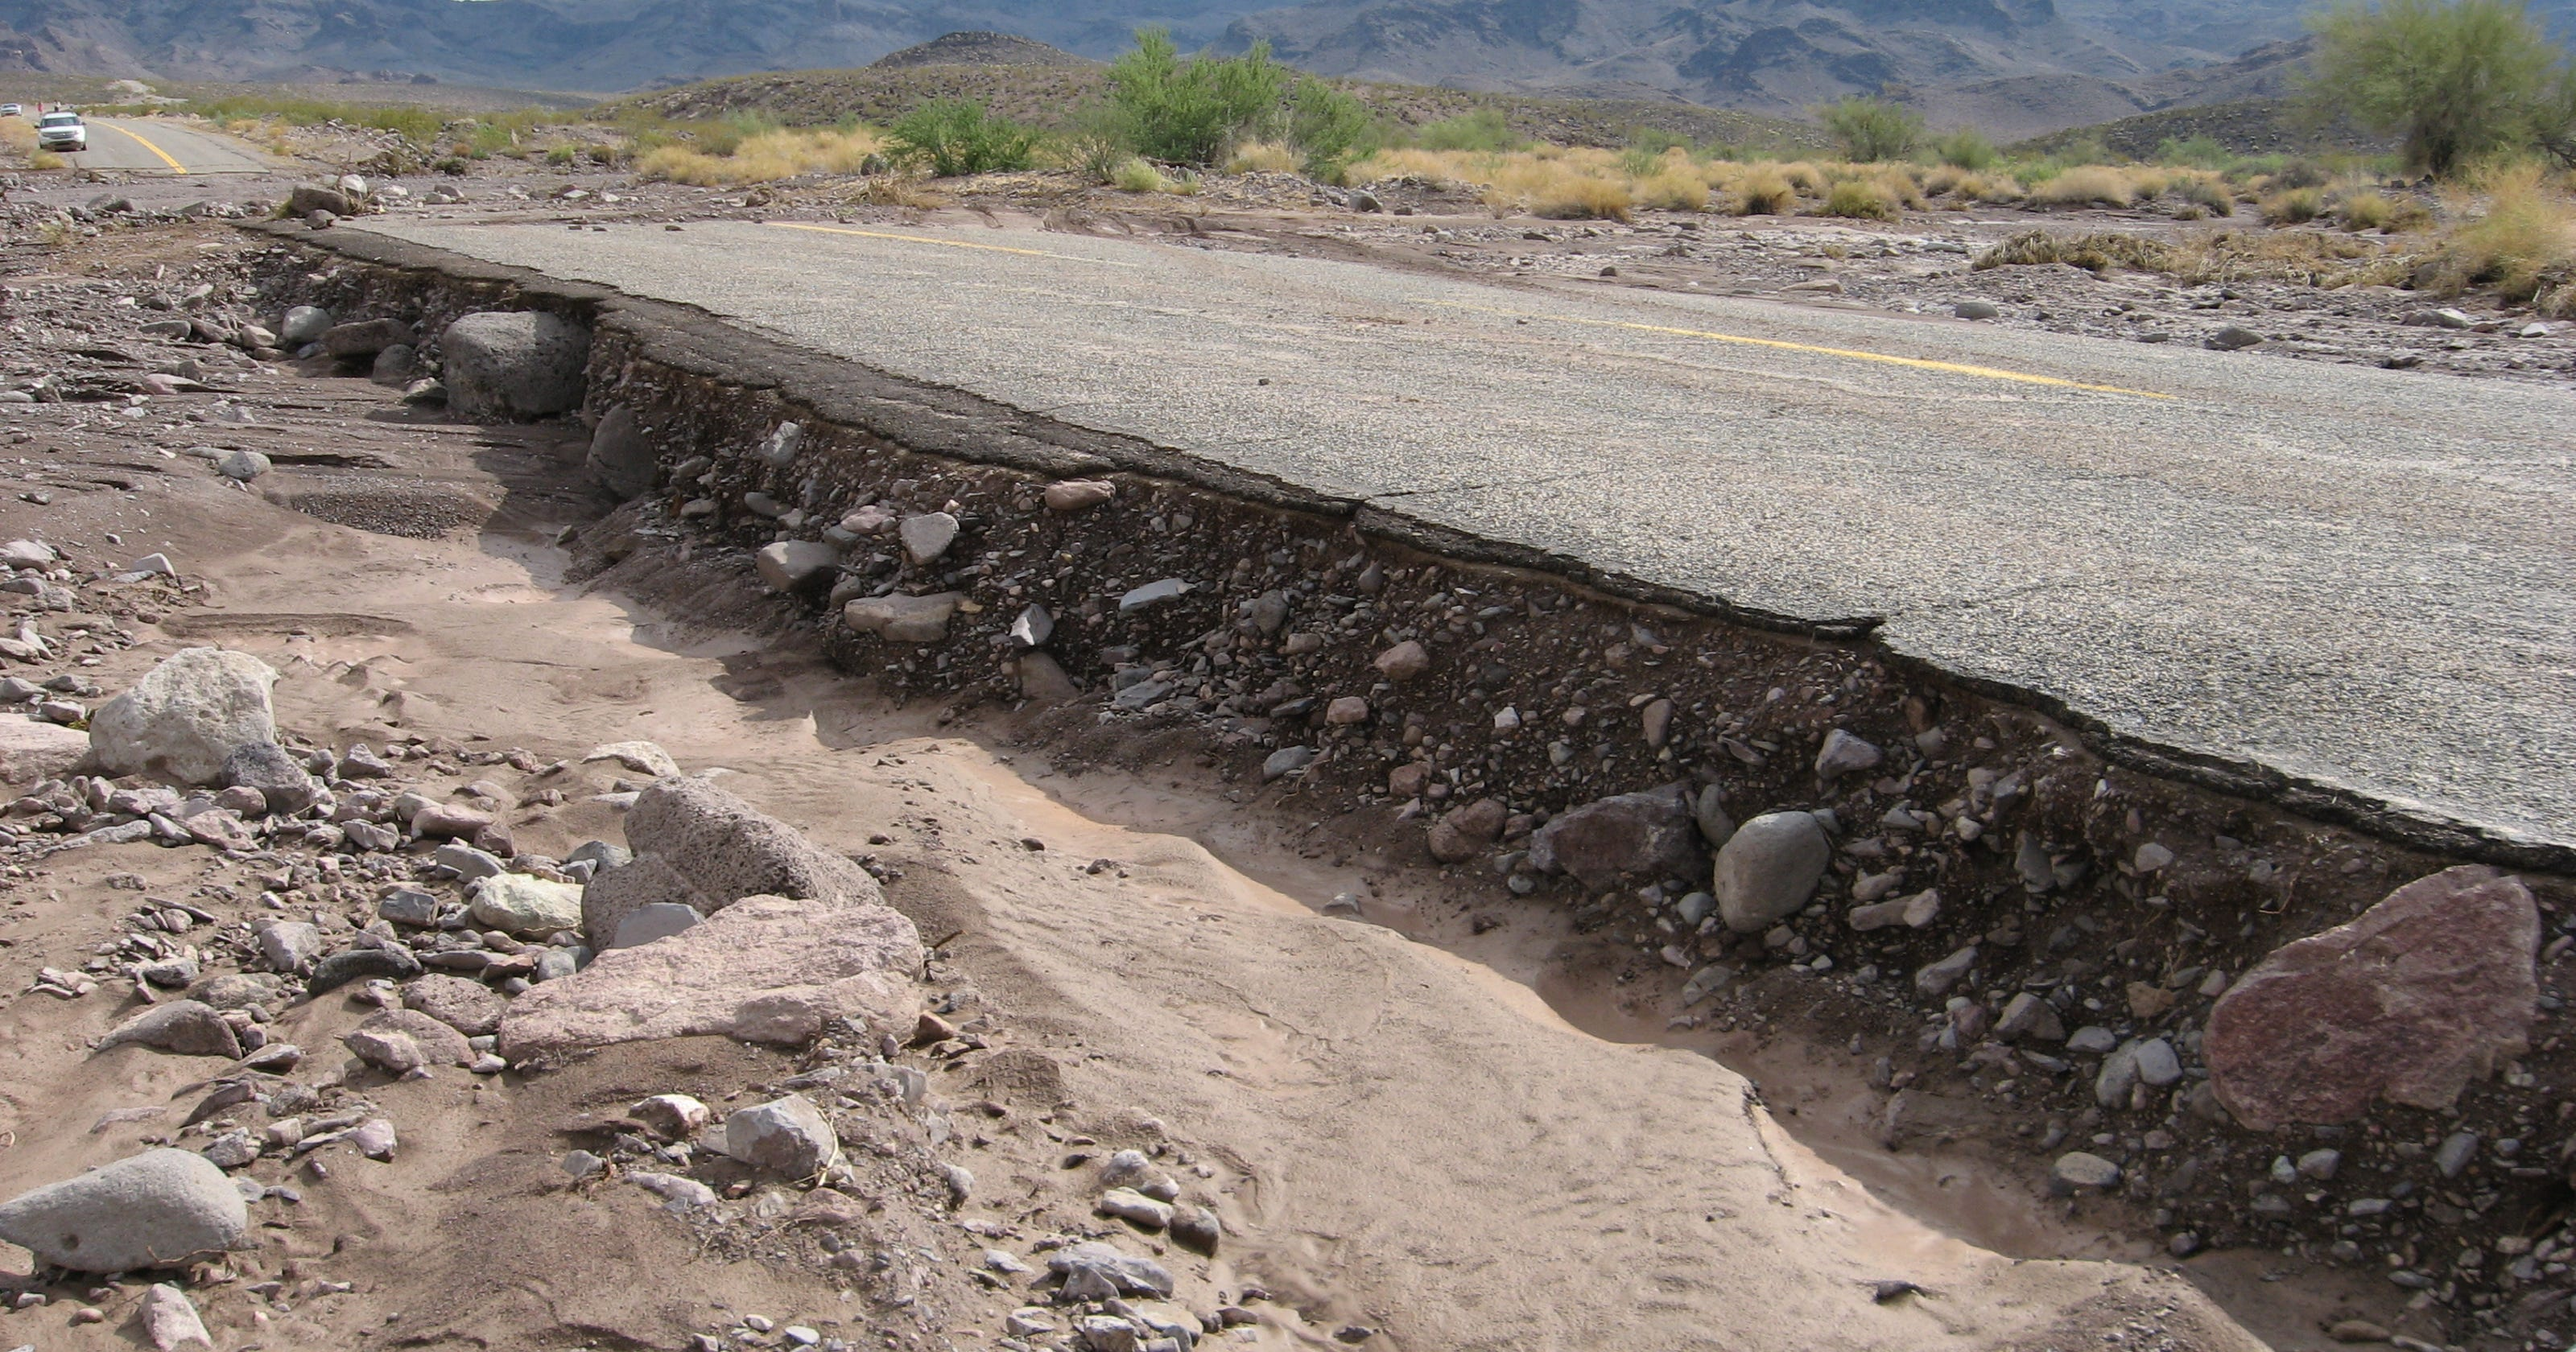 Why might Arizona car registration soon cost more? Hint: Roads are crumbling